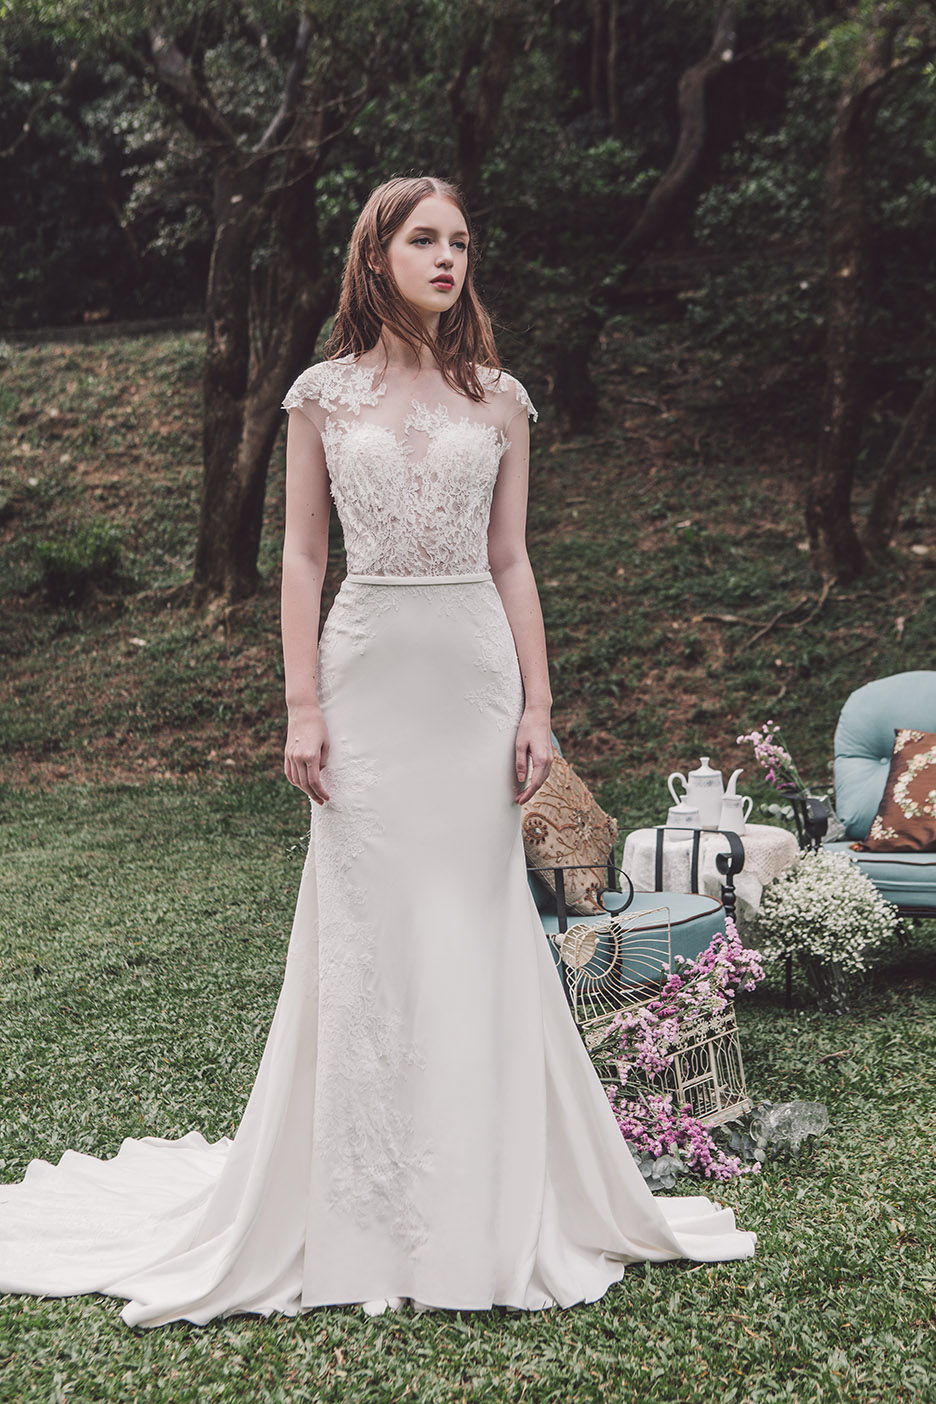 Corliss wedding gown from Atelier Lyanna